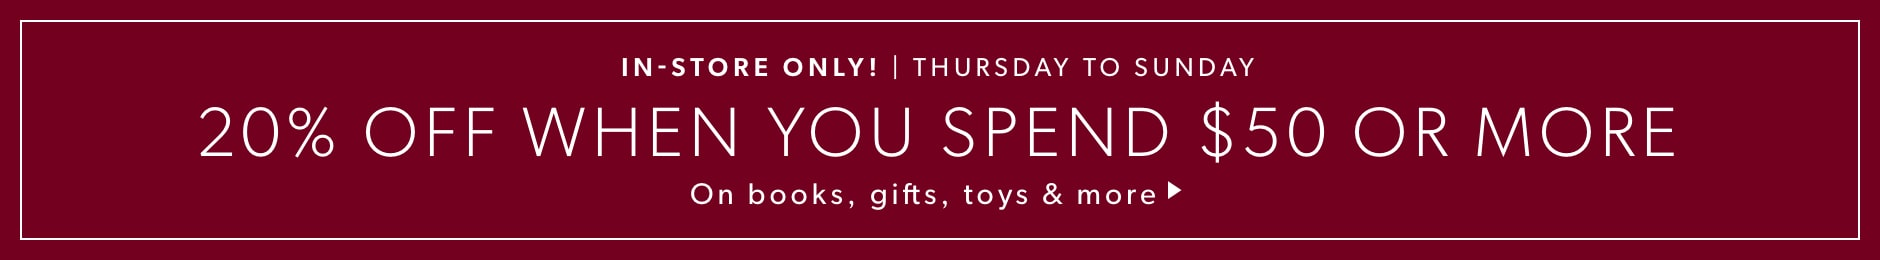 In-Store Only! 20% Off When You Spend $50 Or More on Books, GIfts, Toys & More.